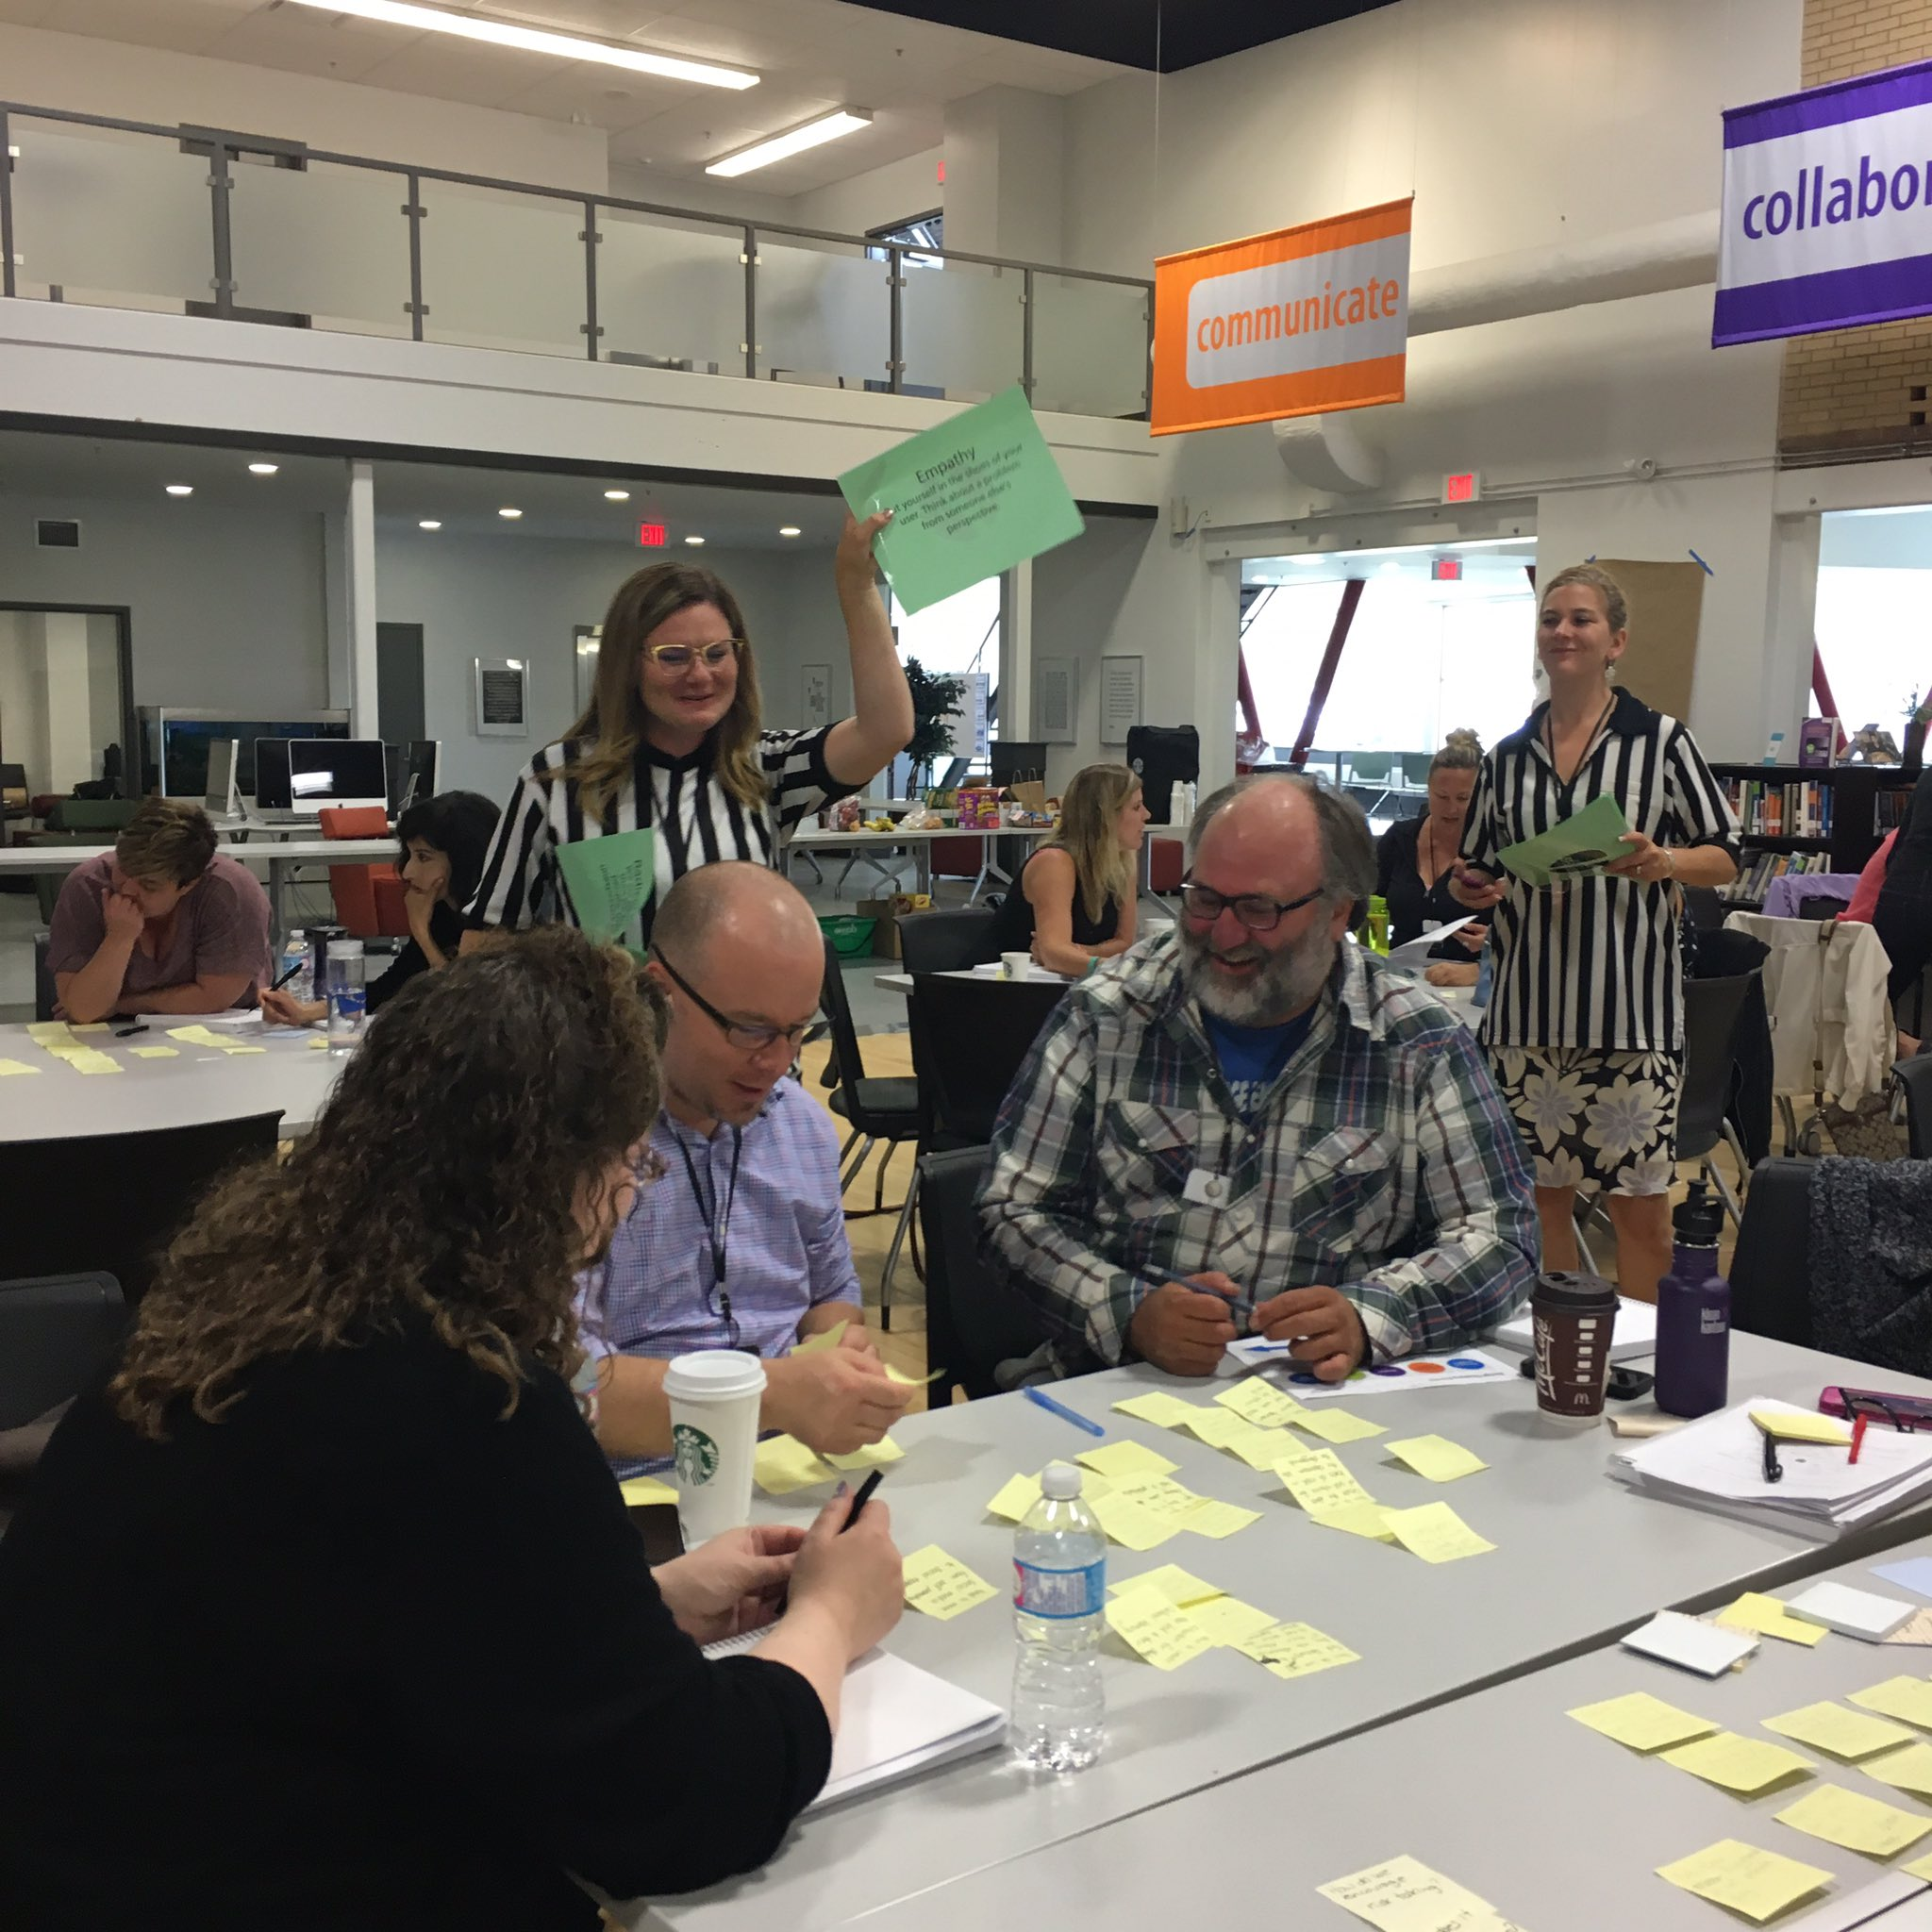 Mindset referees highlighting design thinking mindsets. Becoming aware of new mindsets as we apply them #cbeshift https://t.co/wMMVIzYCQ6